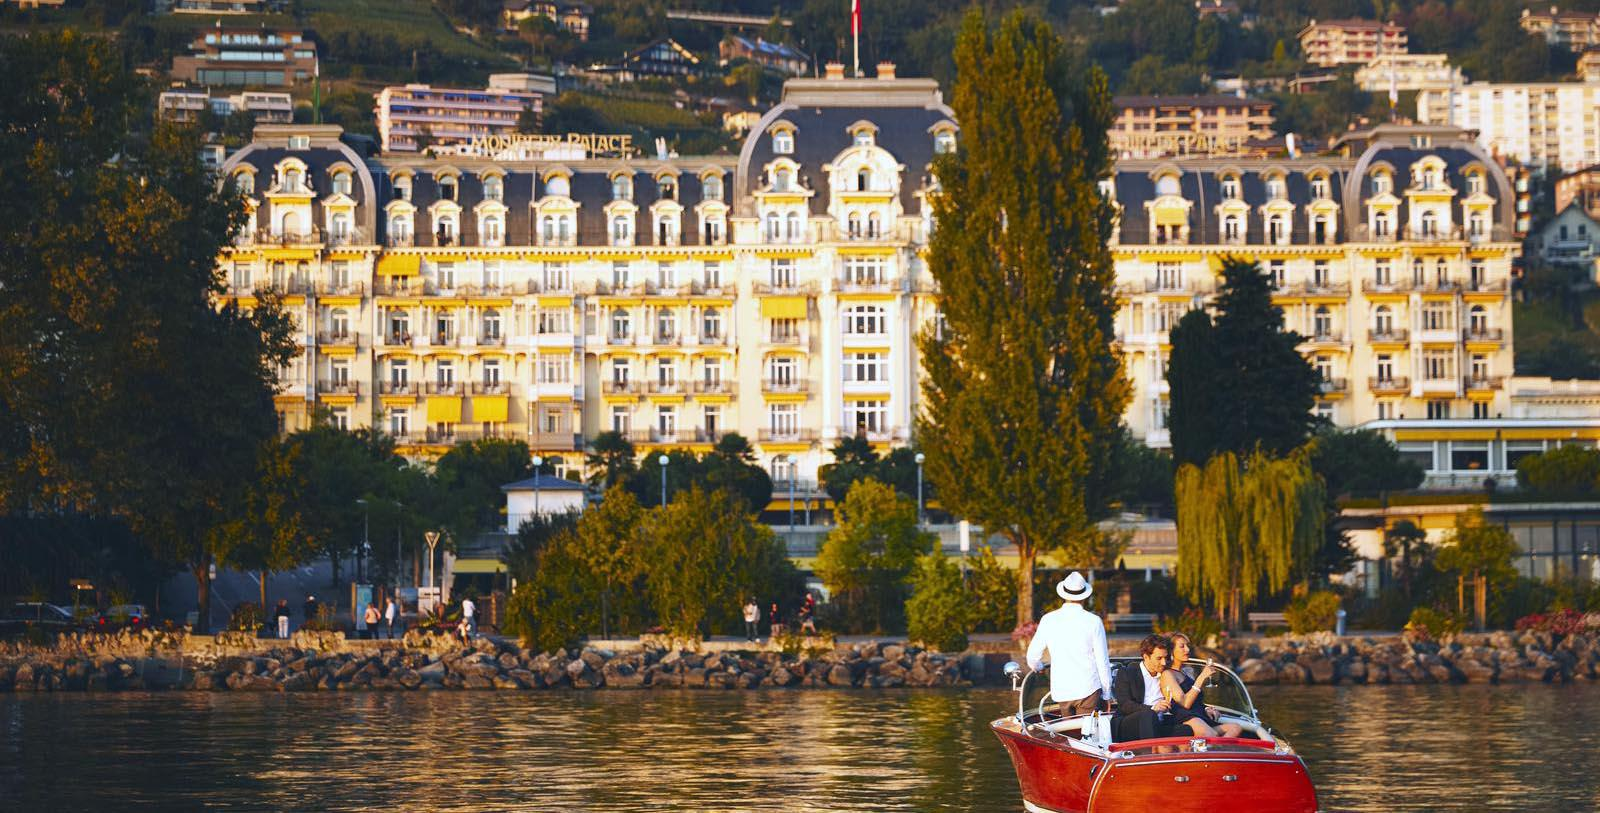 Image of Hotel Exterior Sitting by Pool Fairmont Le Montreux Palace, 1906, Member of Historic Hotels Worldwide, in Montreux, Switzerland, Discover